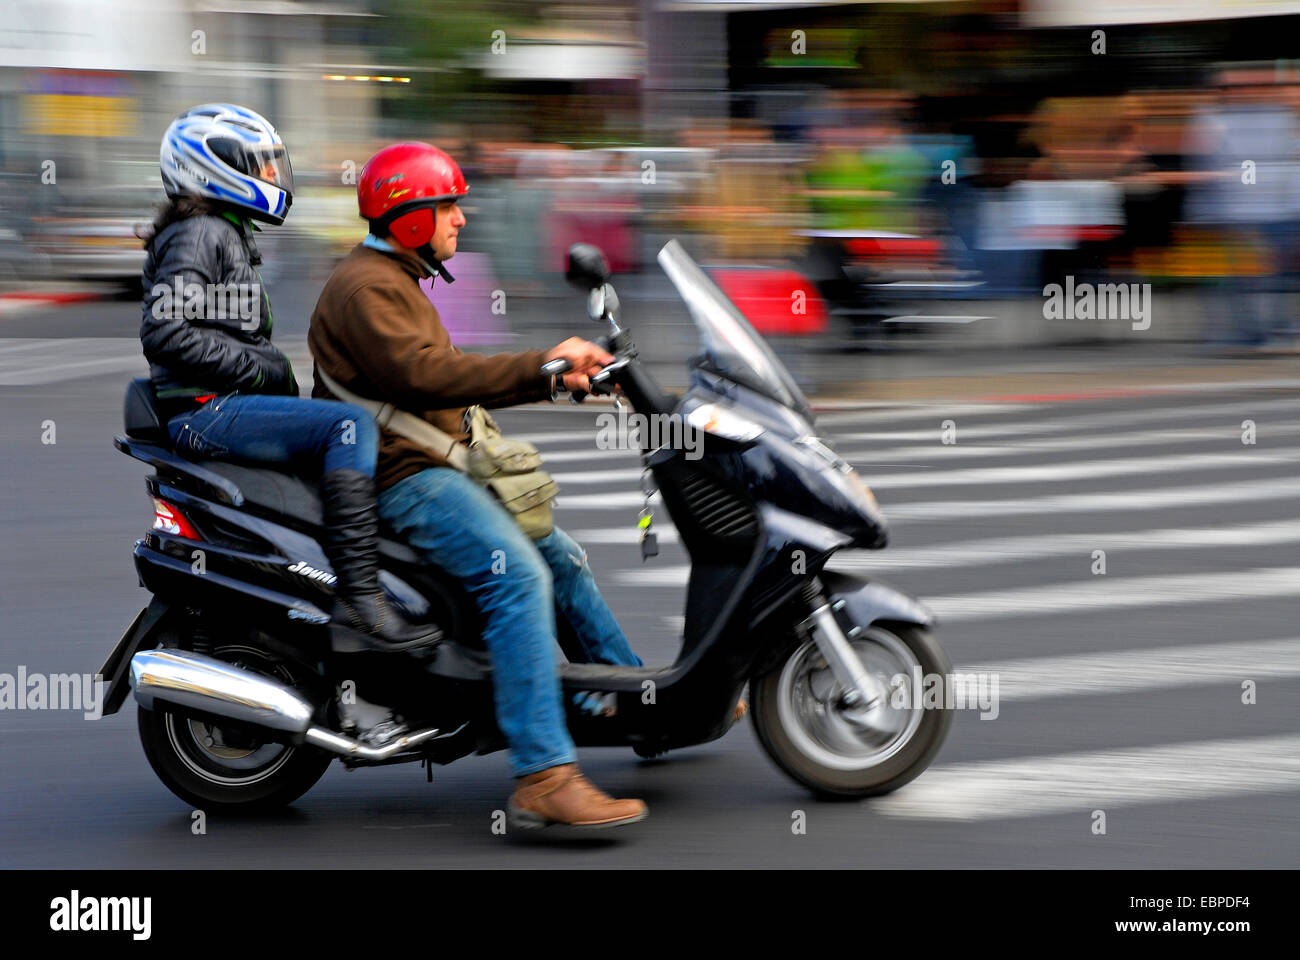 Motorcycle in Tel Aviv, Israel - Stock Image